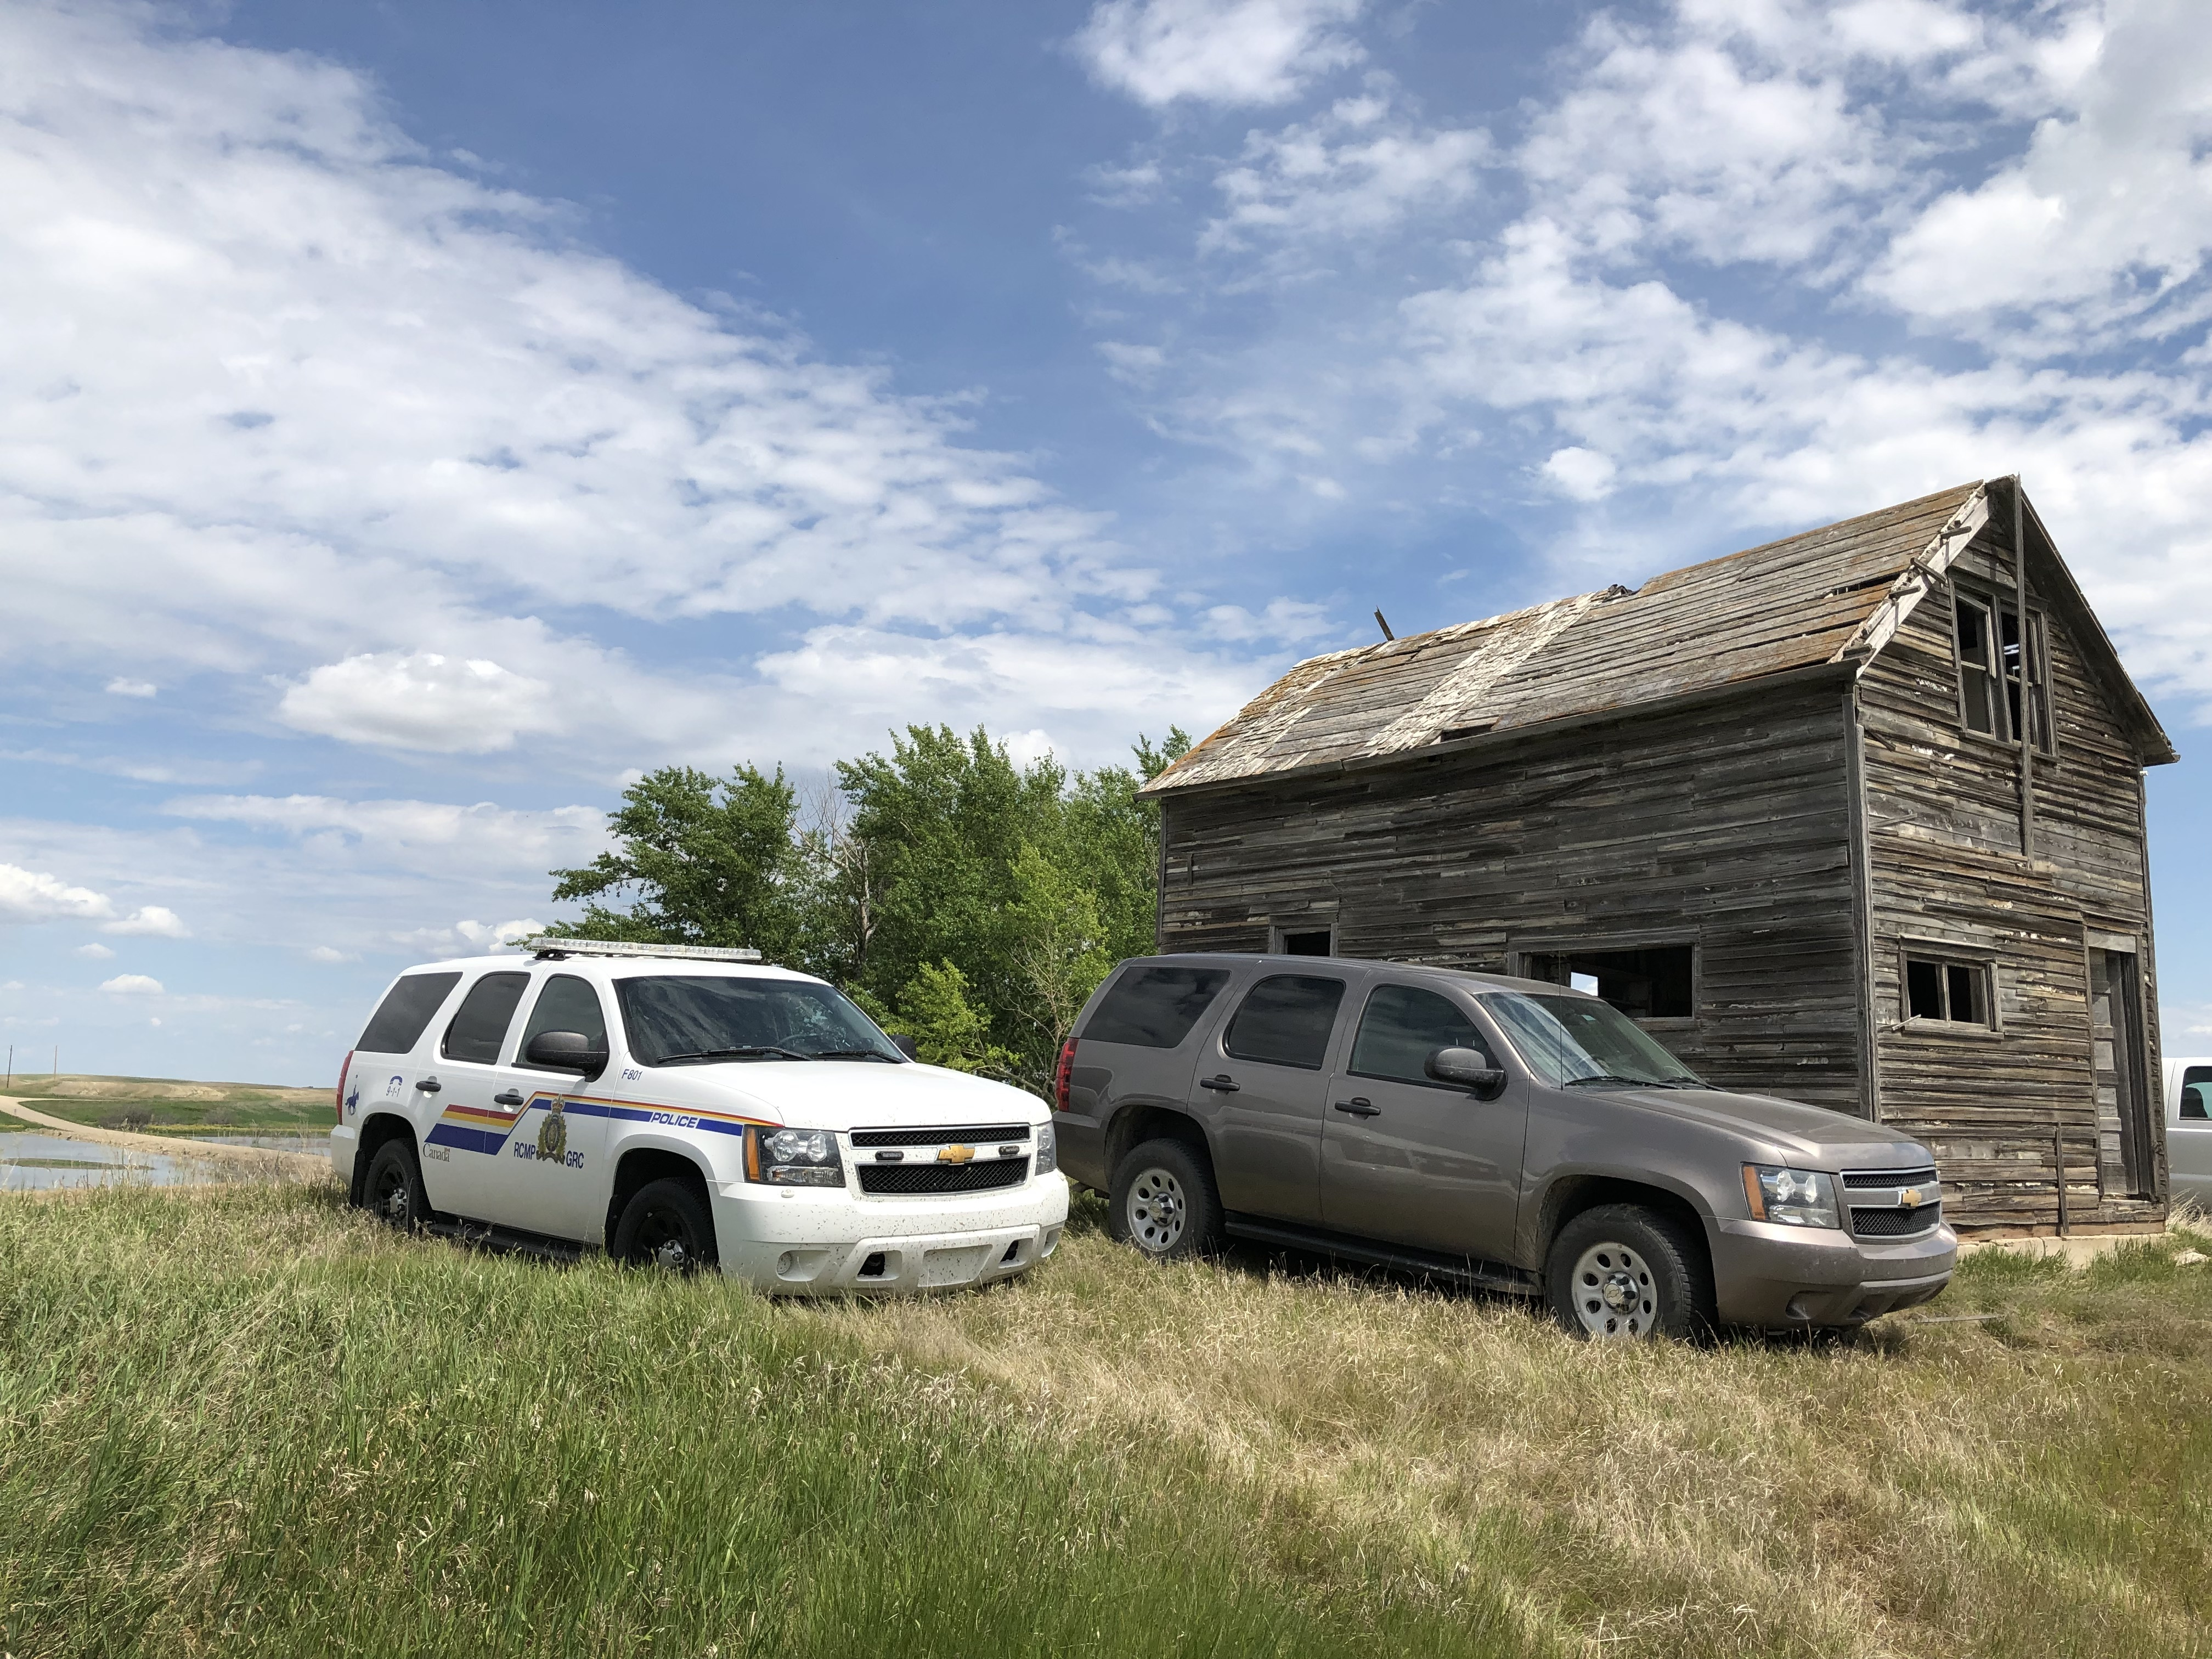 Police search near the gravel pit in July. (Victoria Dinh/CBC)